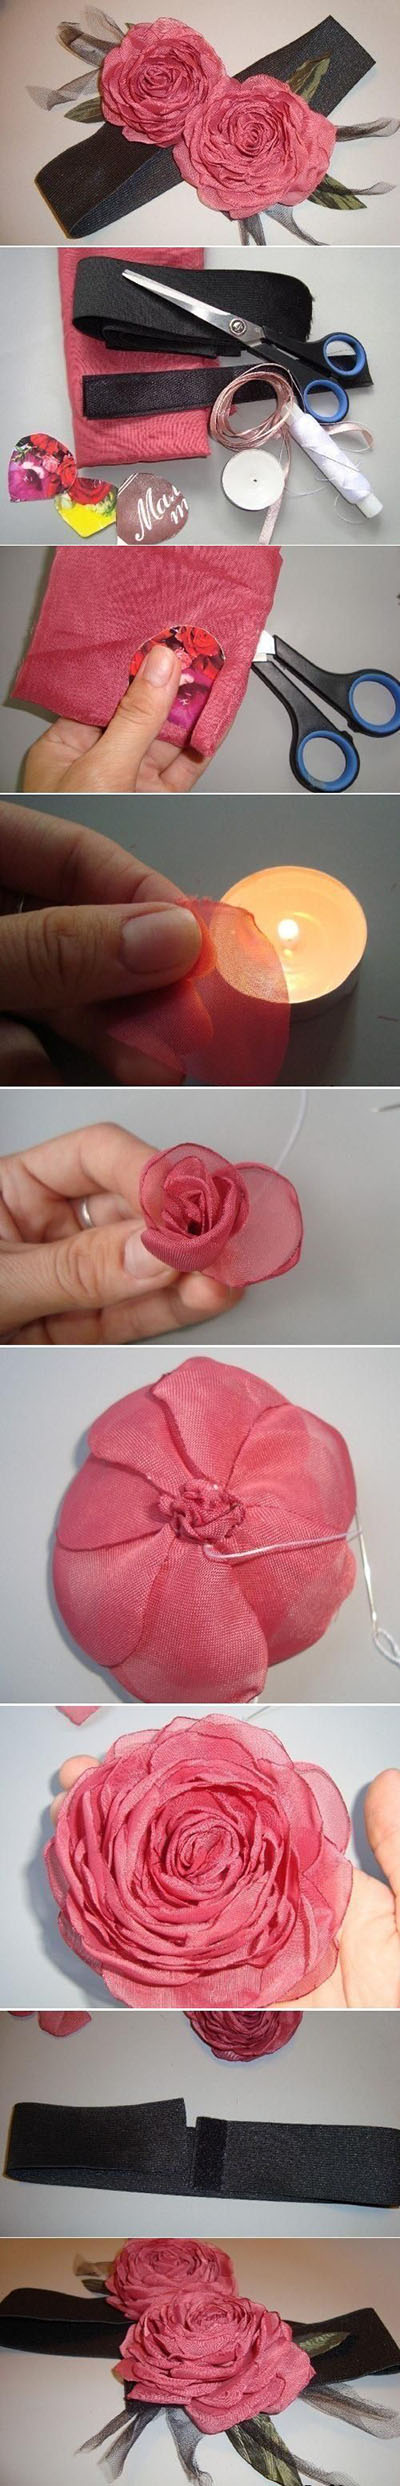 11  DIY Organza Rose 09e5e0